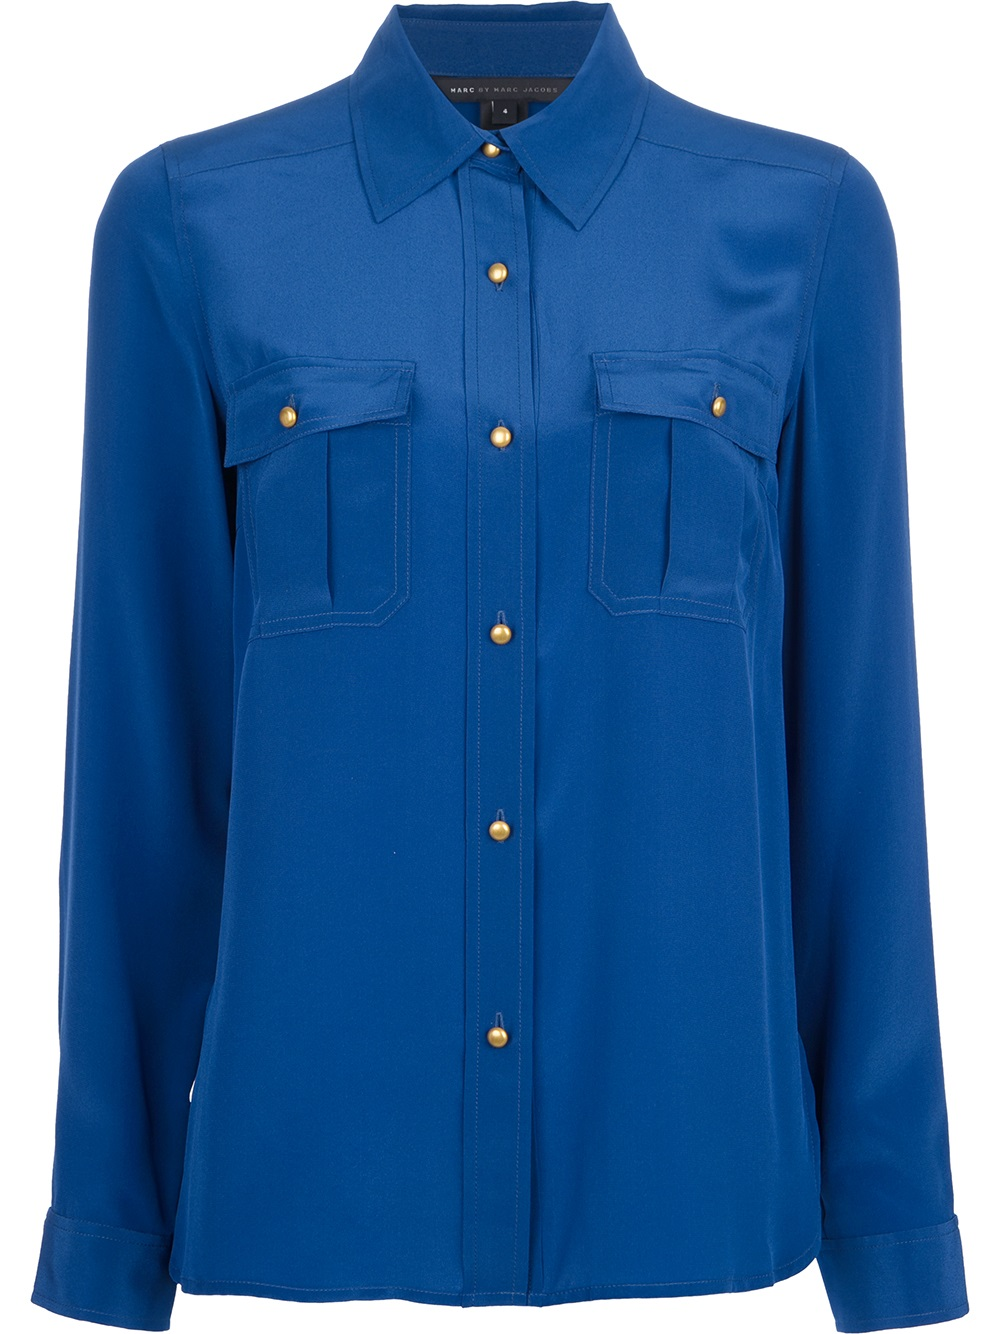 Marc by marc jacobs button down silk shirt in blue lyst for Silk button down shirt